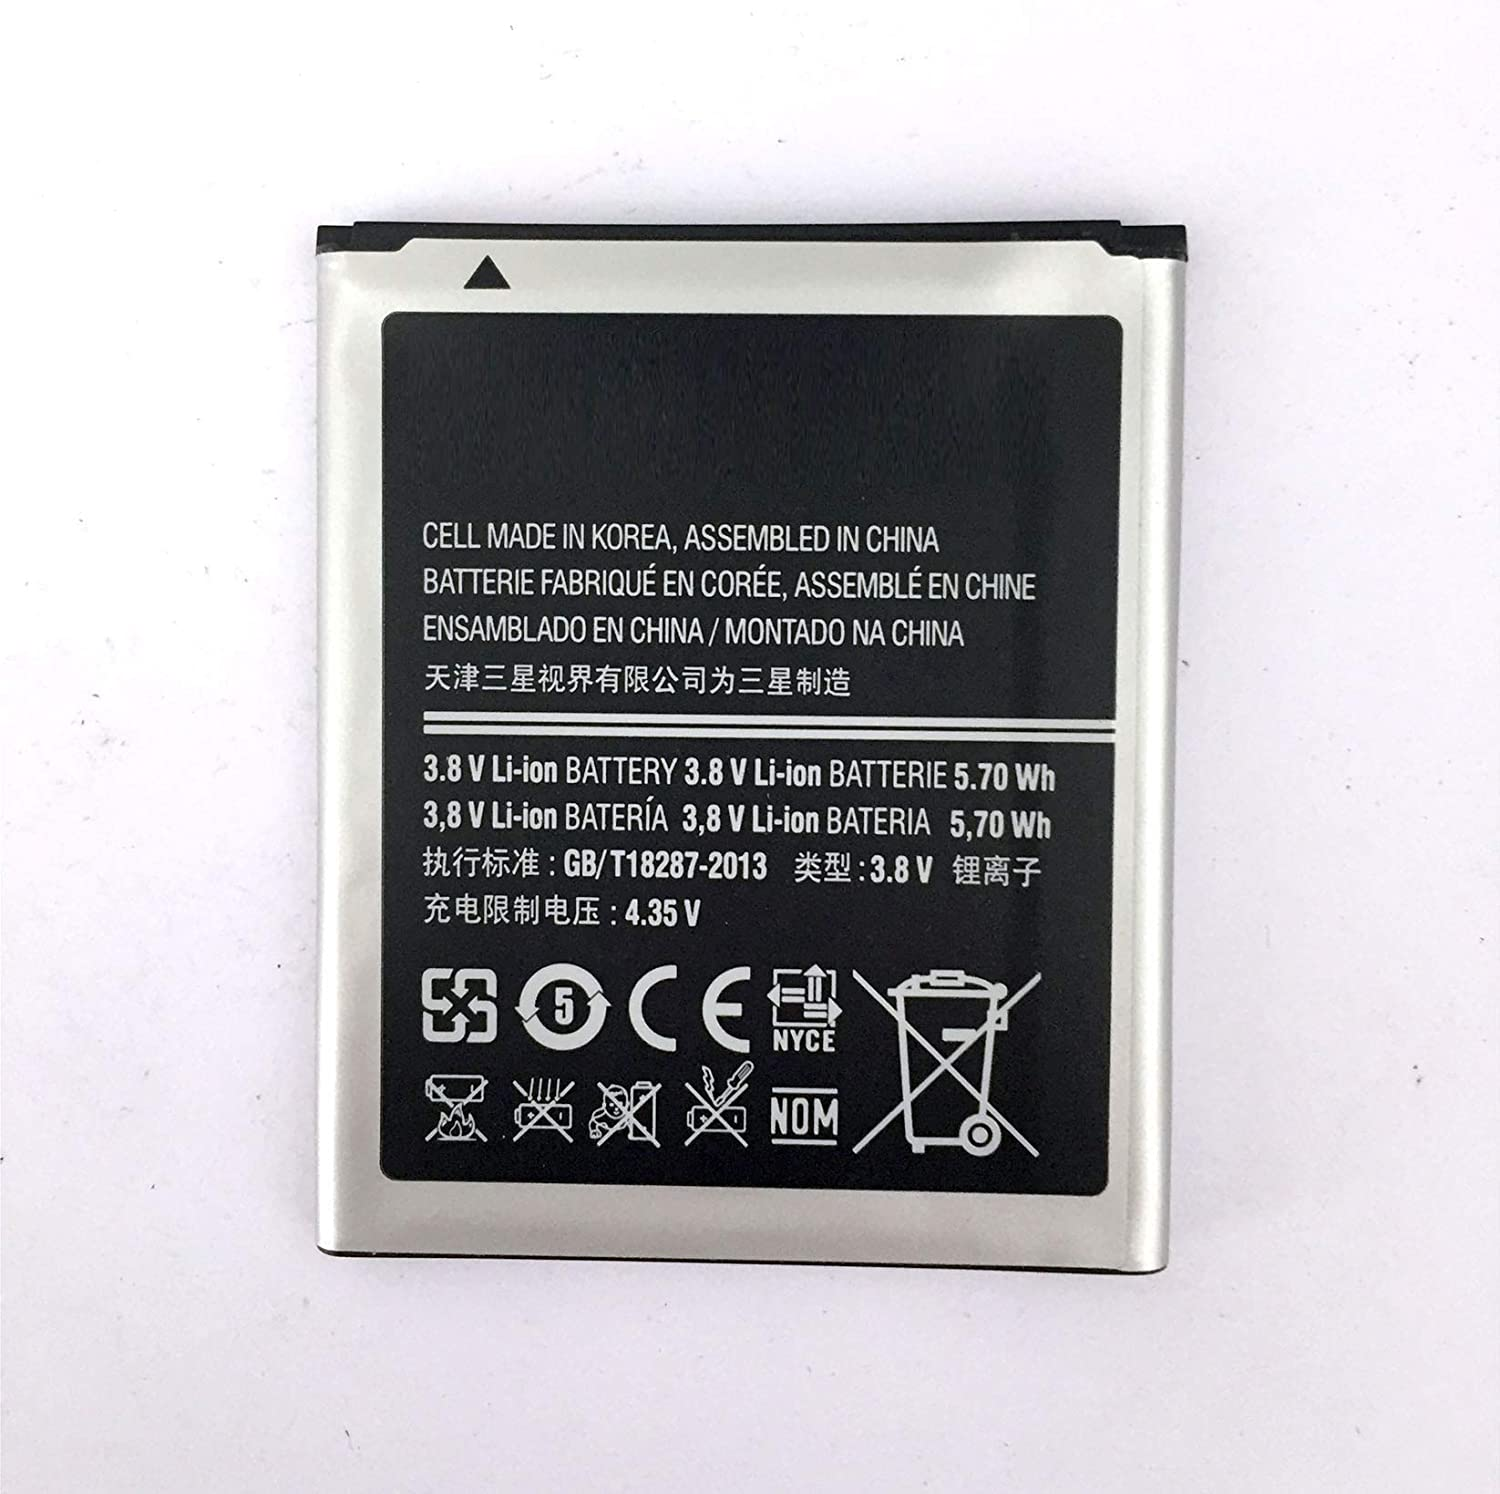 High-Performance 4400mAh Extended Slim Battery for Samsung Galaxy Note 2 II N7100 SGH-I317 Smartphone